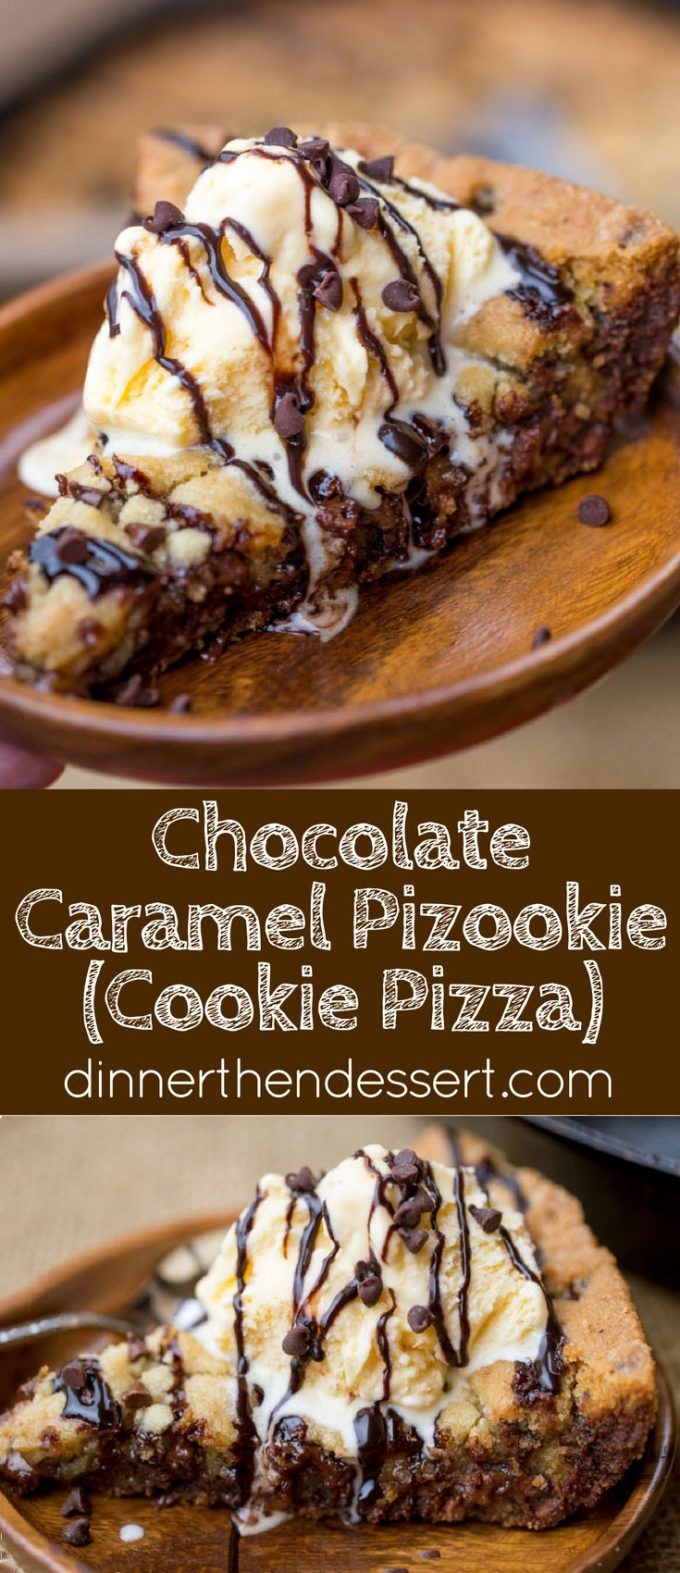 16520 best images about Favorite Recipes on Pinterest ...